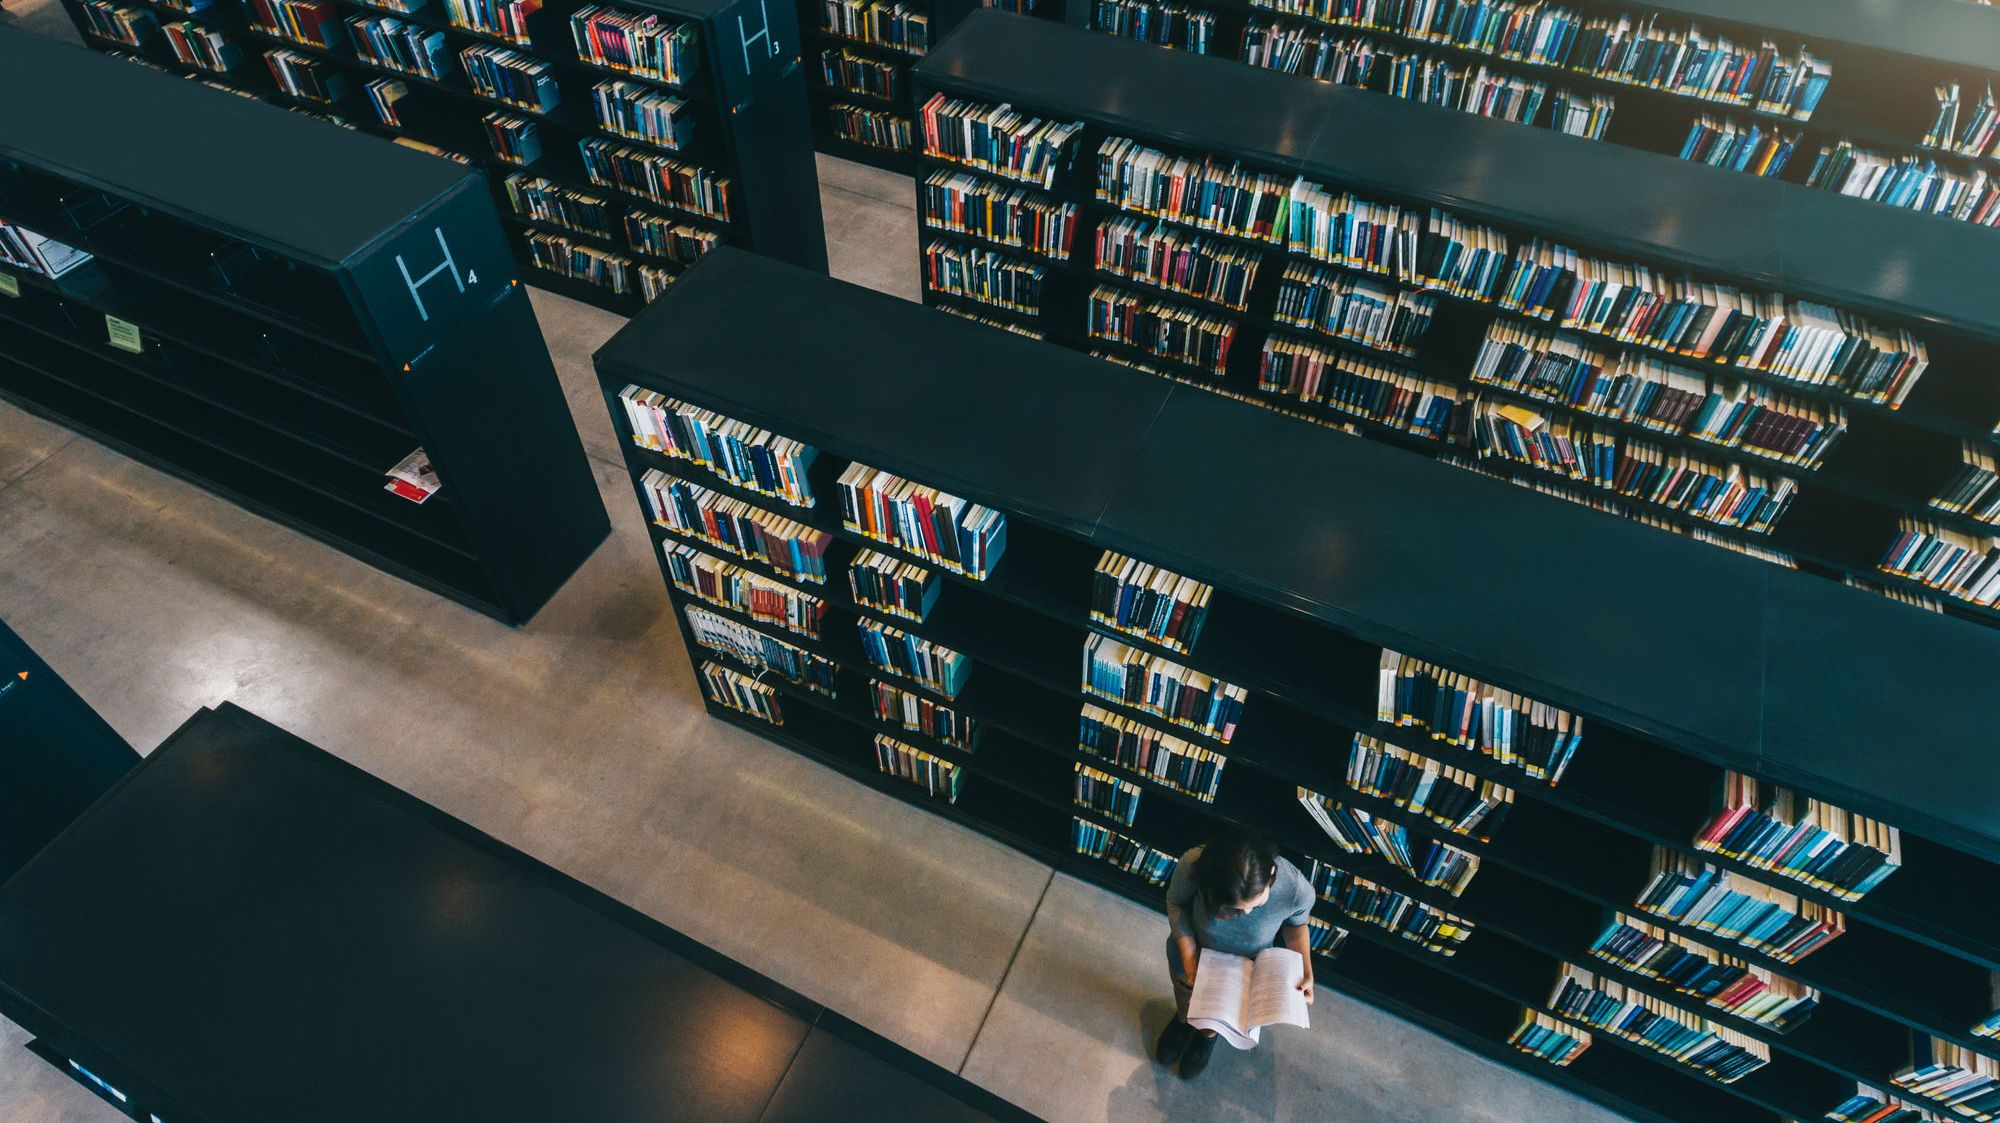 25 Amazing Facts About Libraries